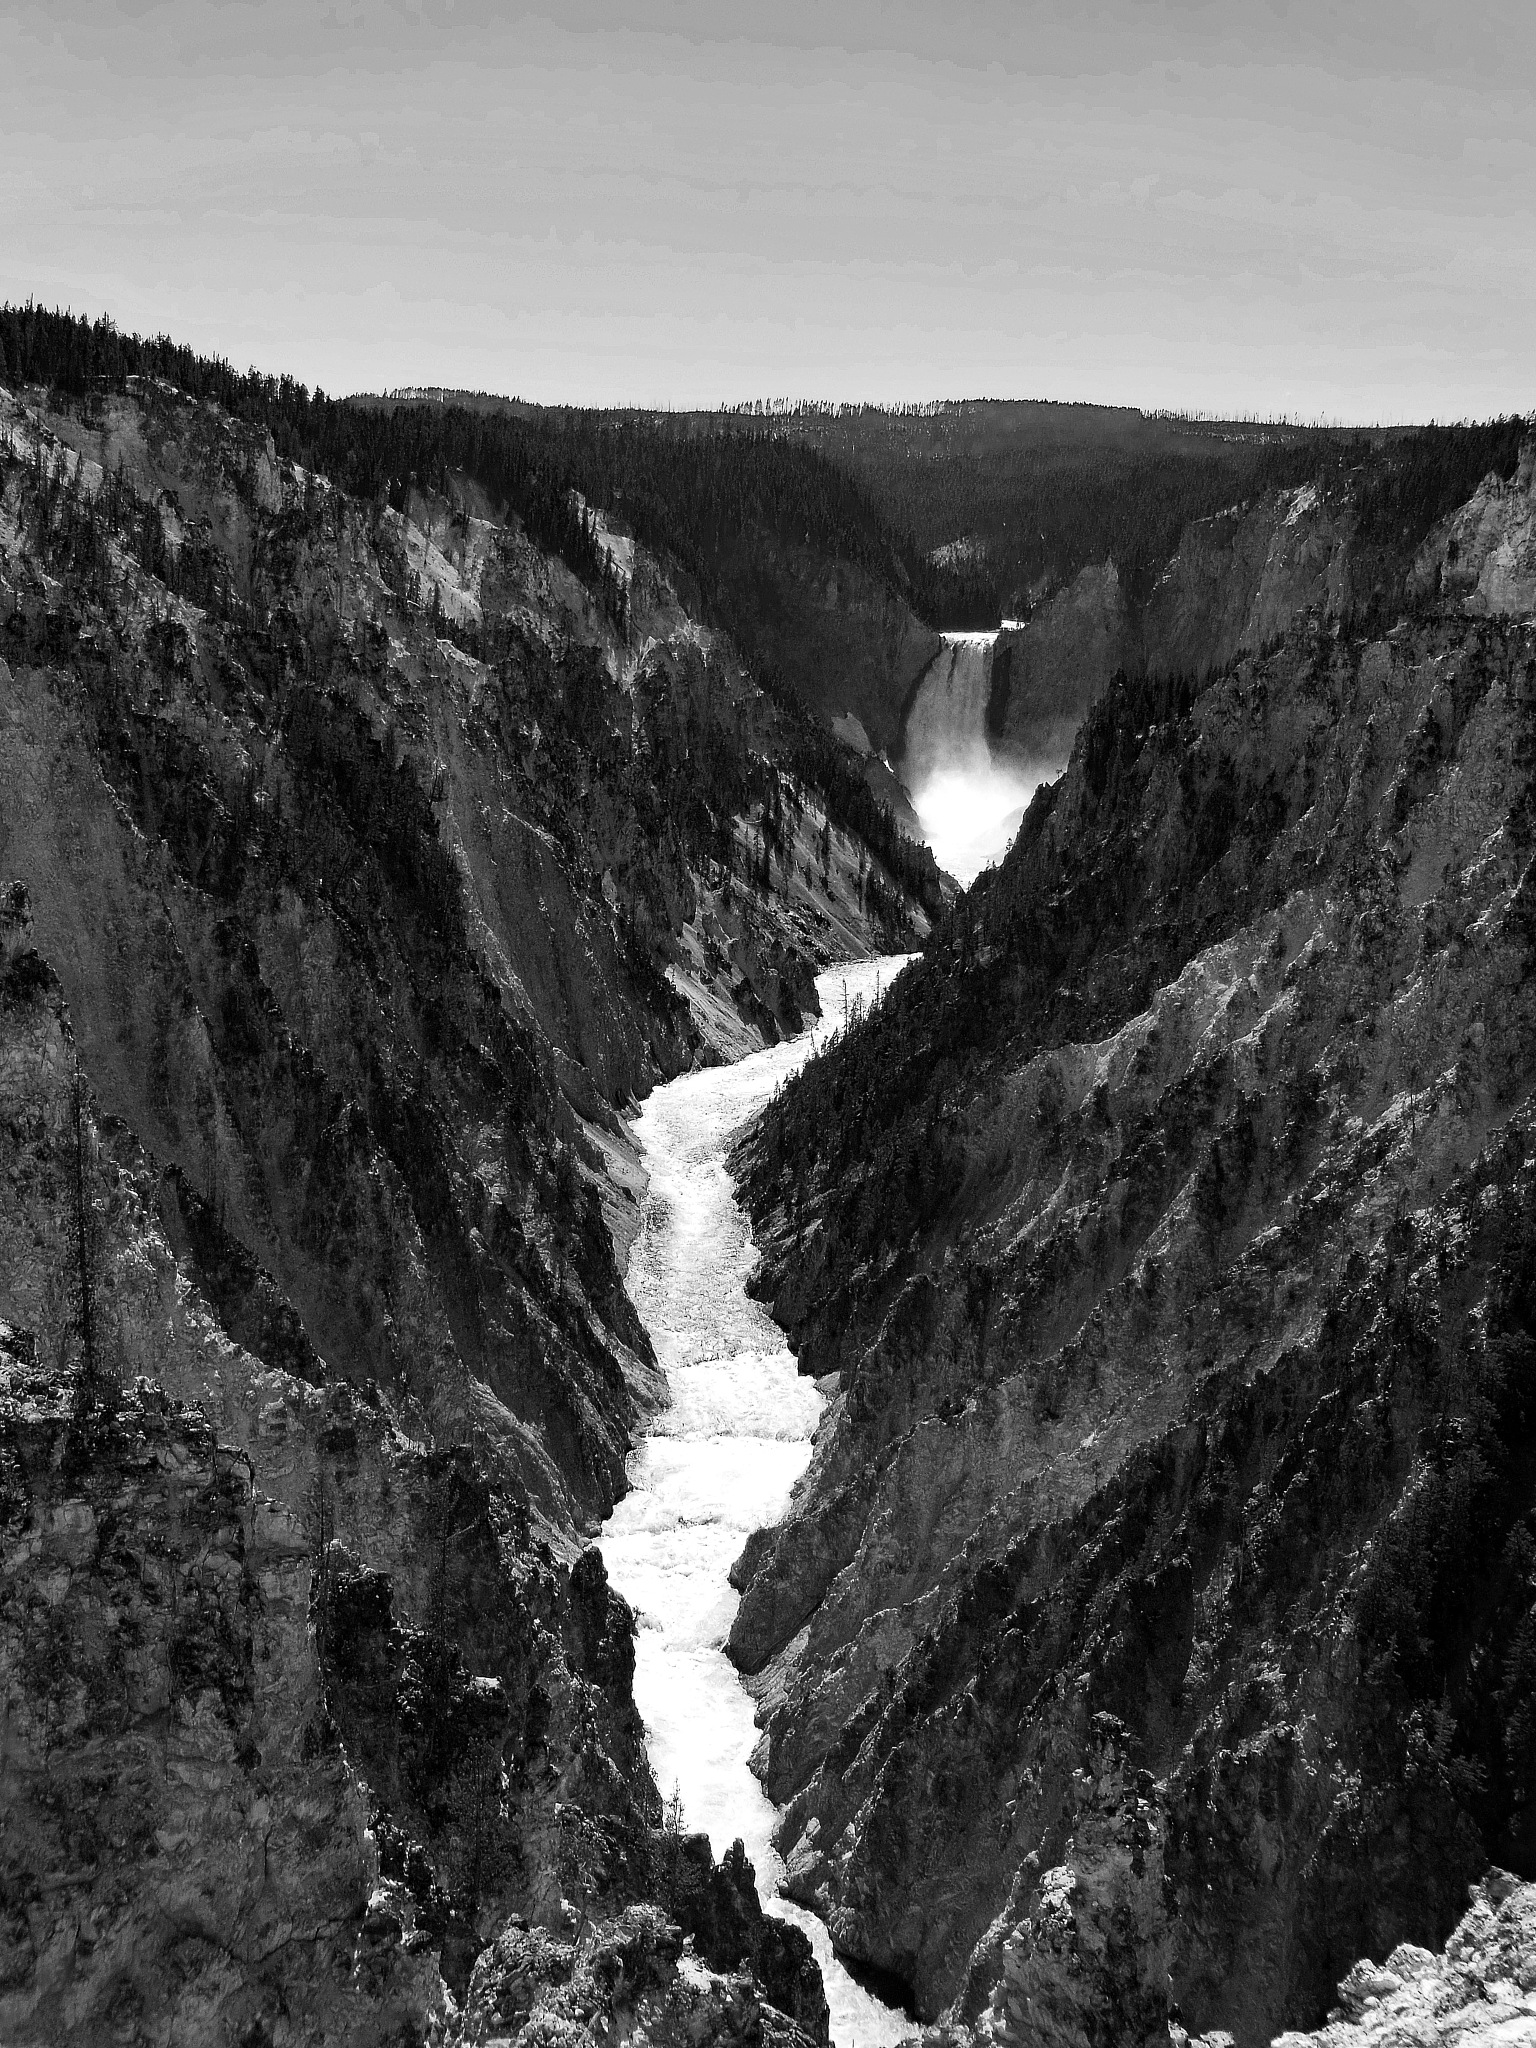 Yellowstone river in Black and White by rayboudewyn